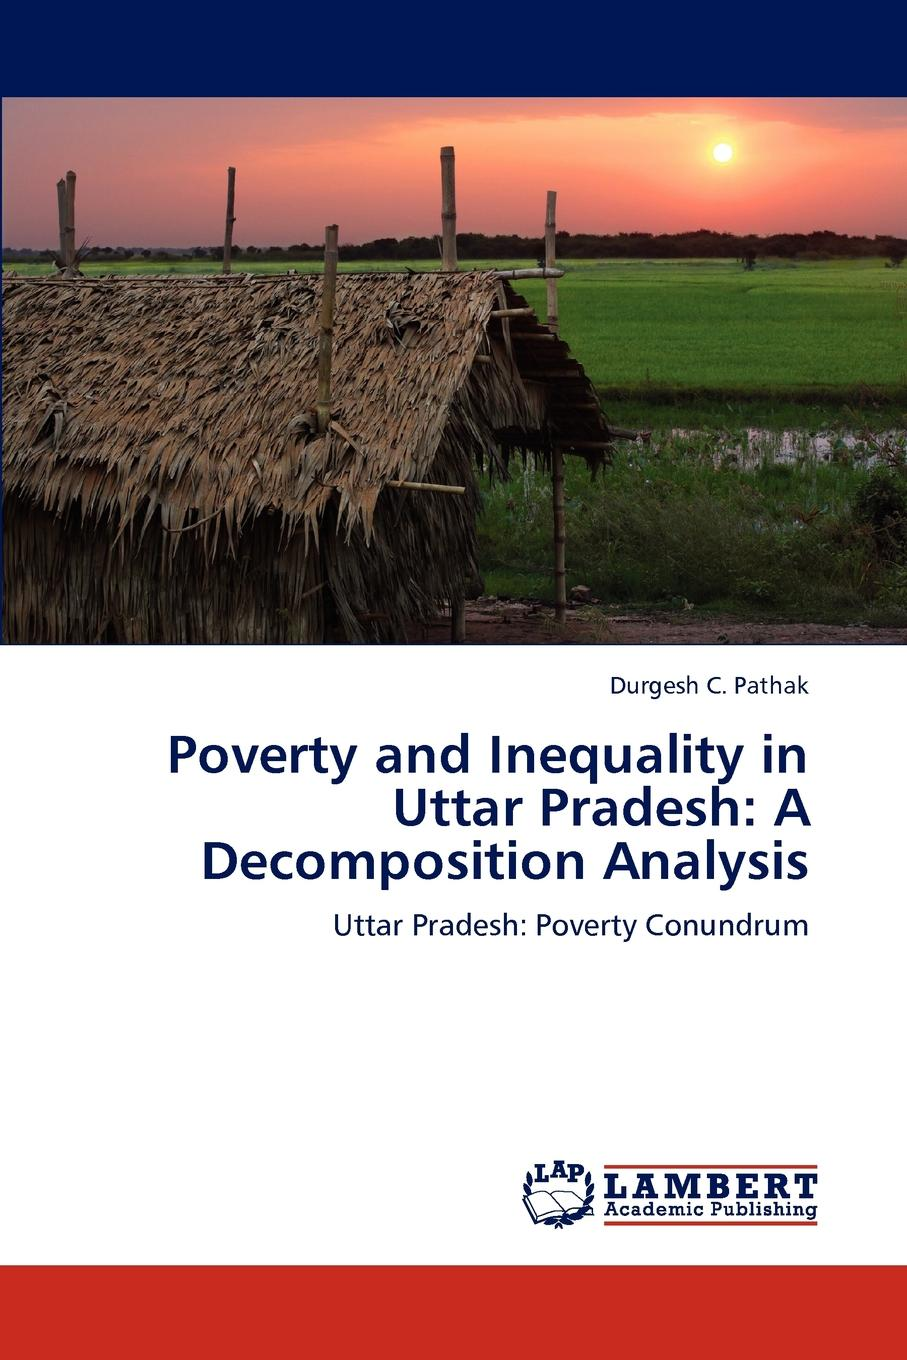 Durgesh C. Pathak Poverty and Inequality in Uttar Pradesh. A Decomposition Analysis thoti mallikarjuna rural development programmes in chitoor district of andhra pradesh